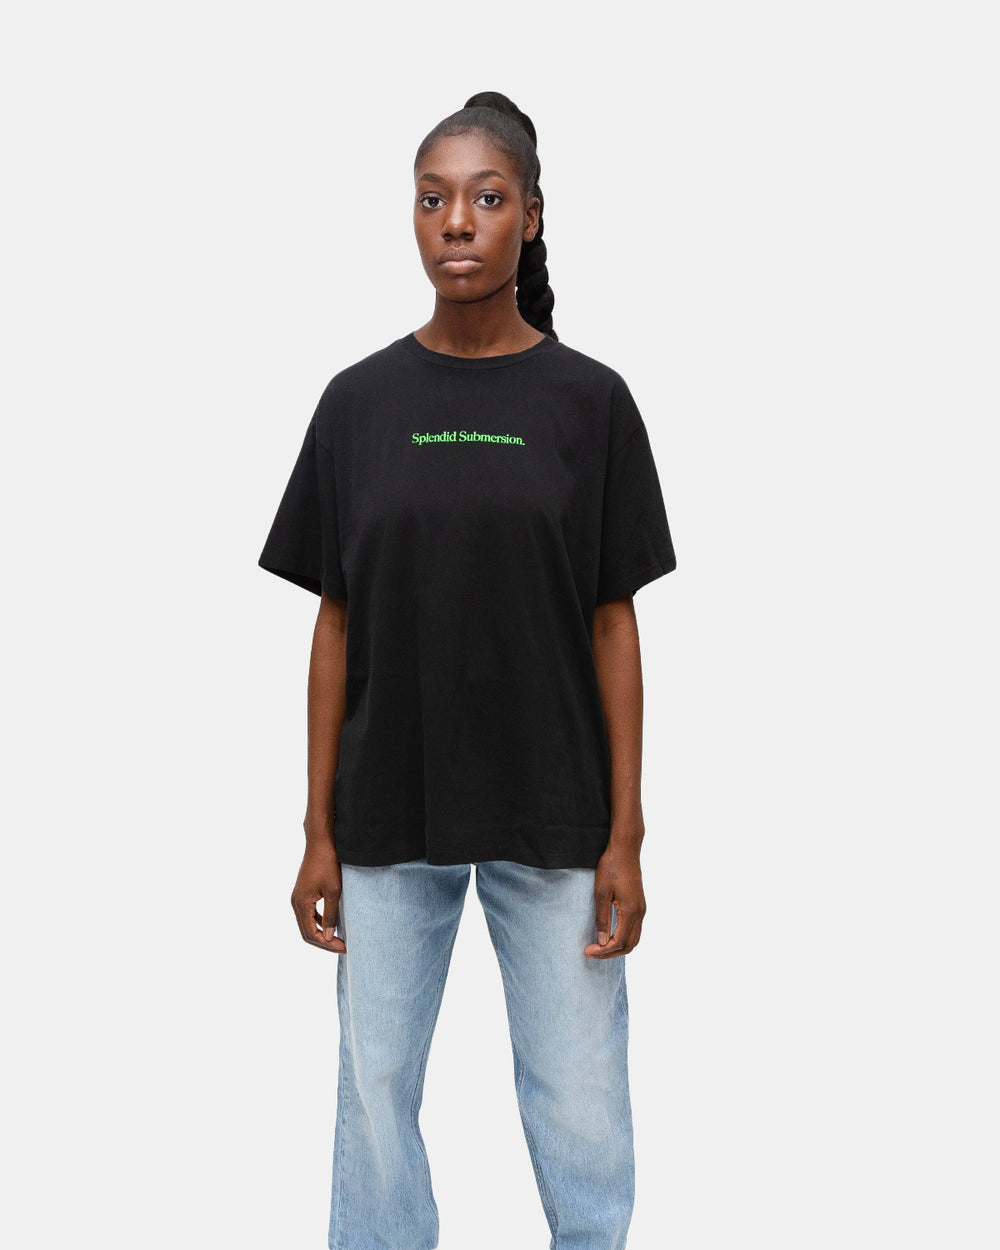 Ksubi - Women's Splendid Submersion Tee (Black)